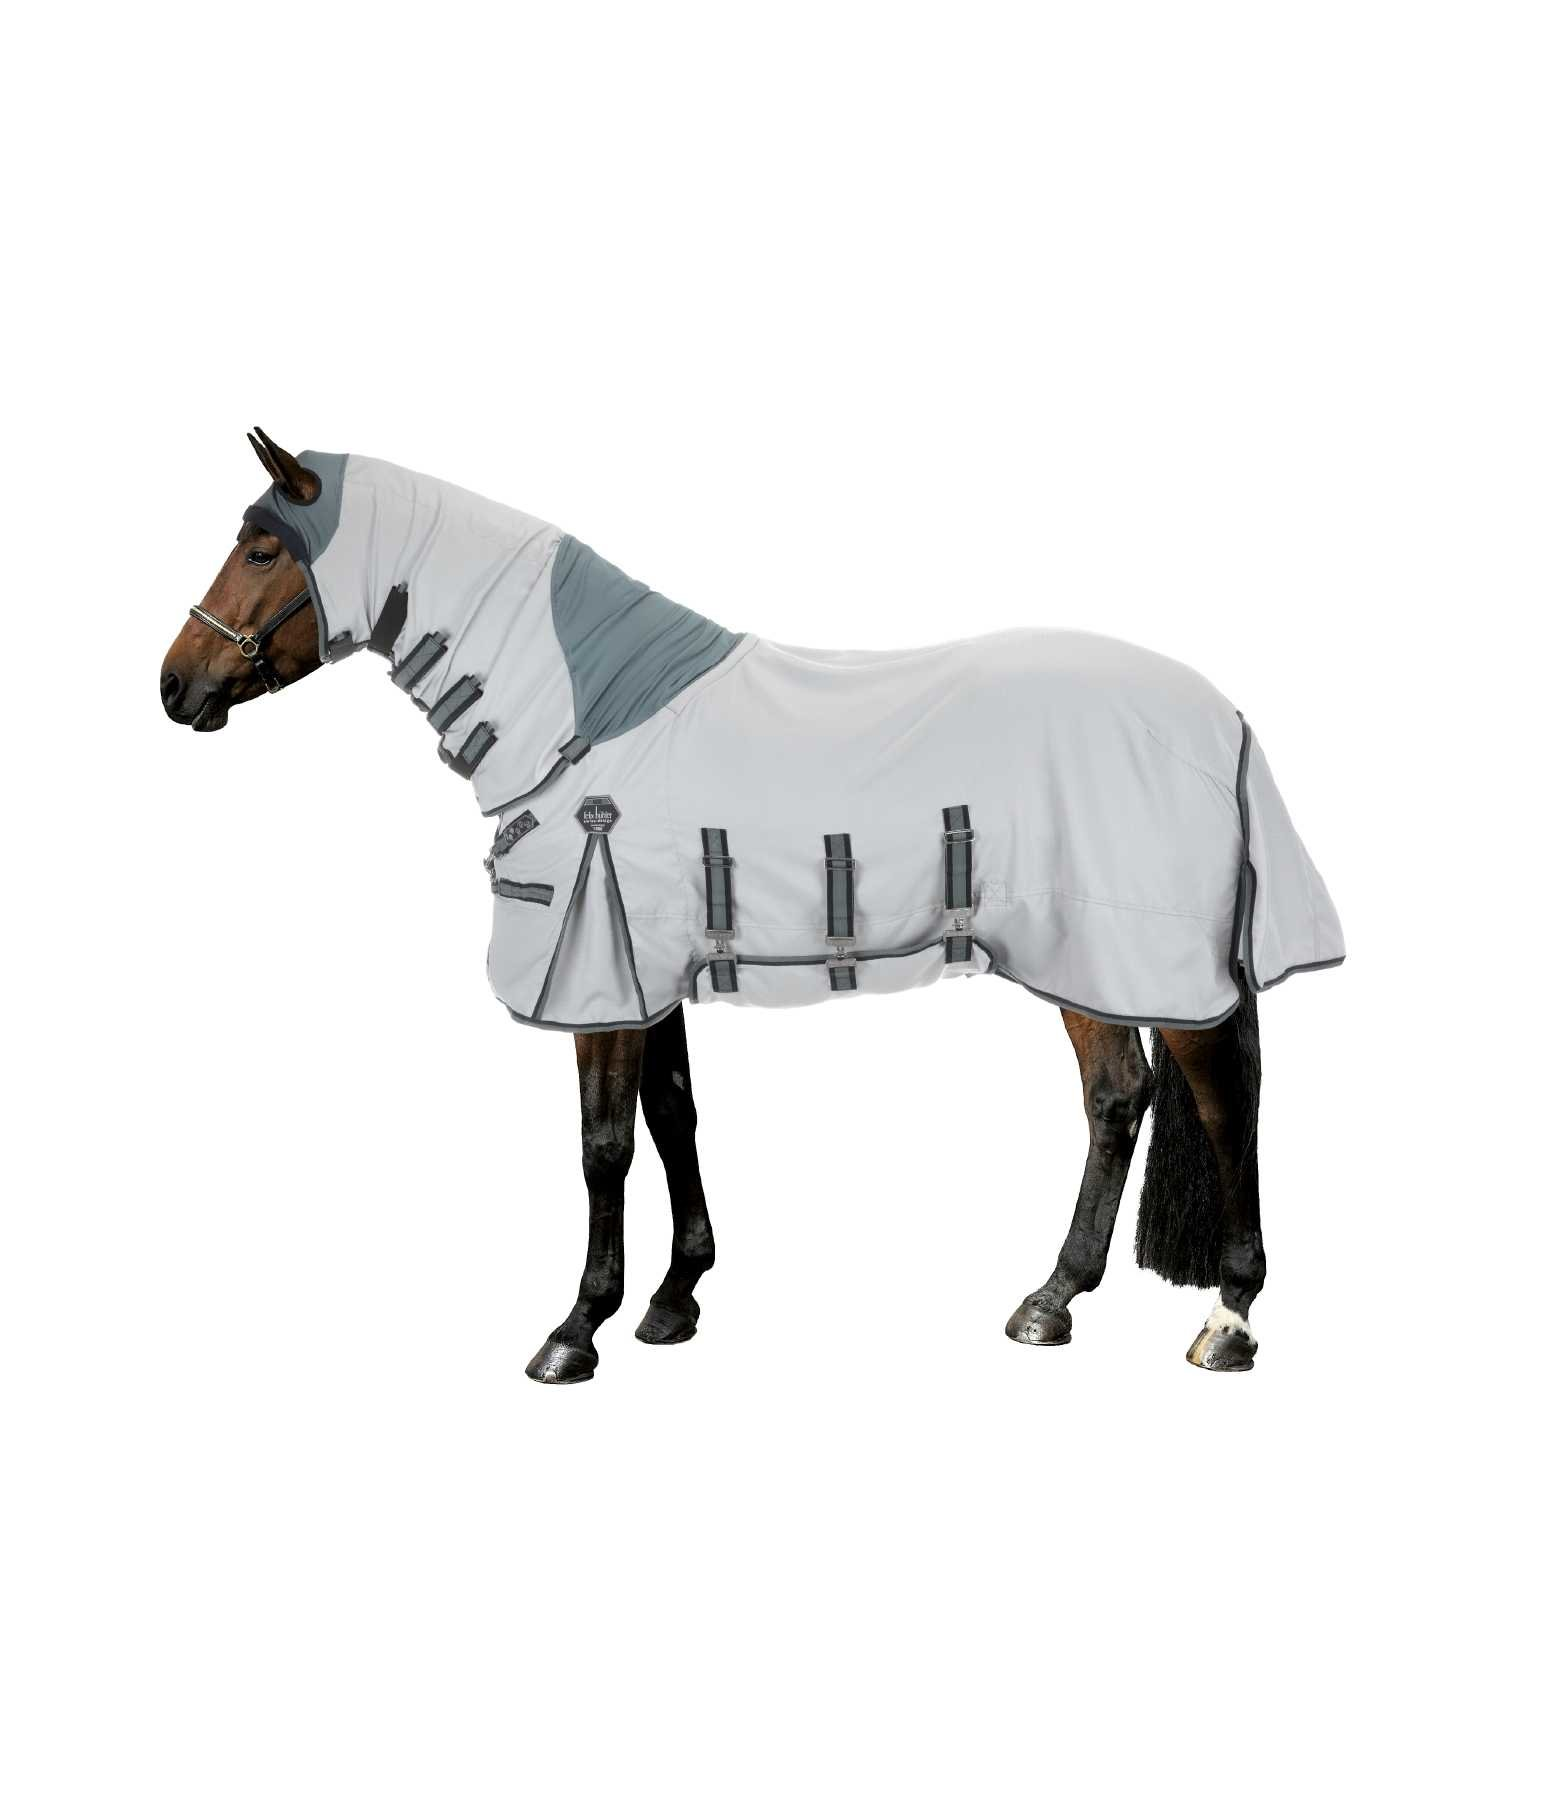 Full Neck Sweet Itch Rug Ripstop Combo with UV Protection 50+